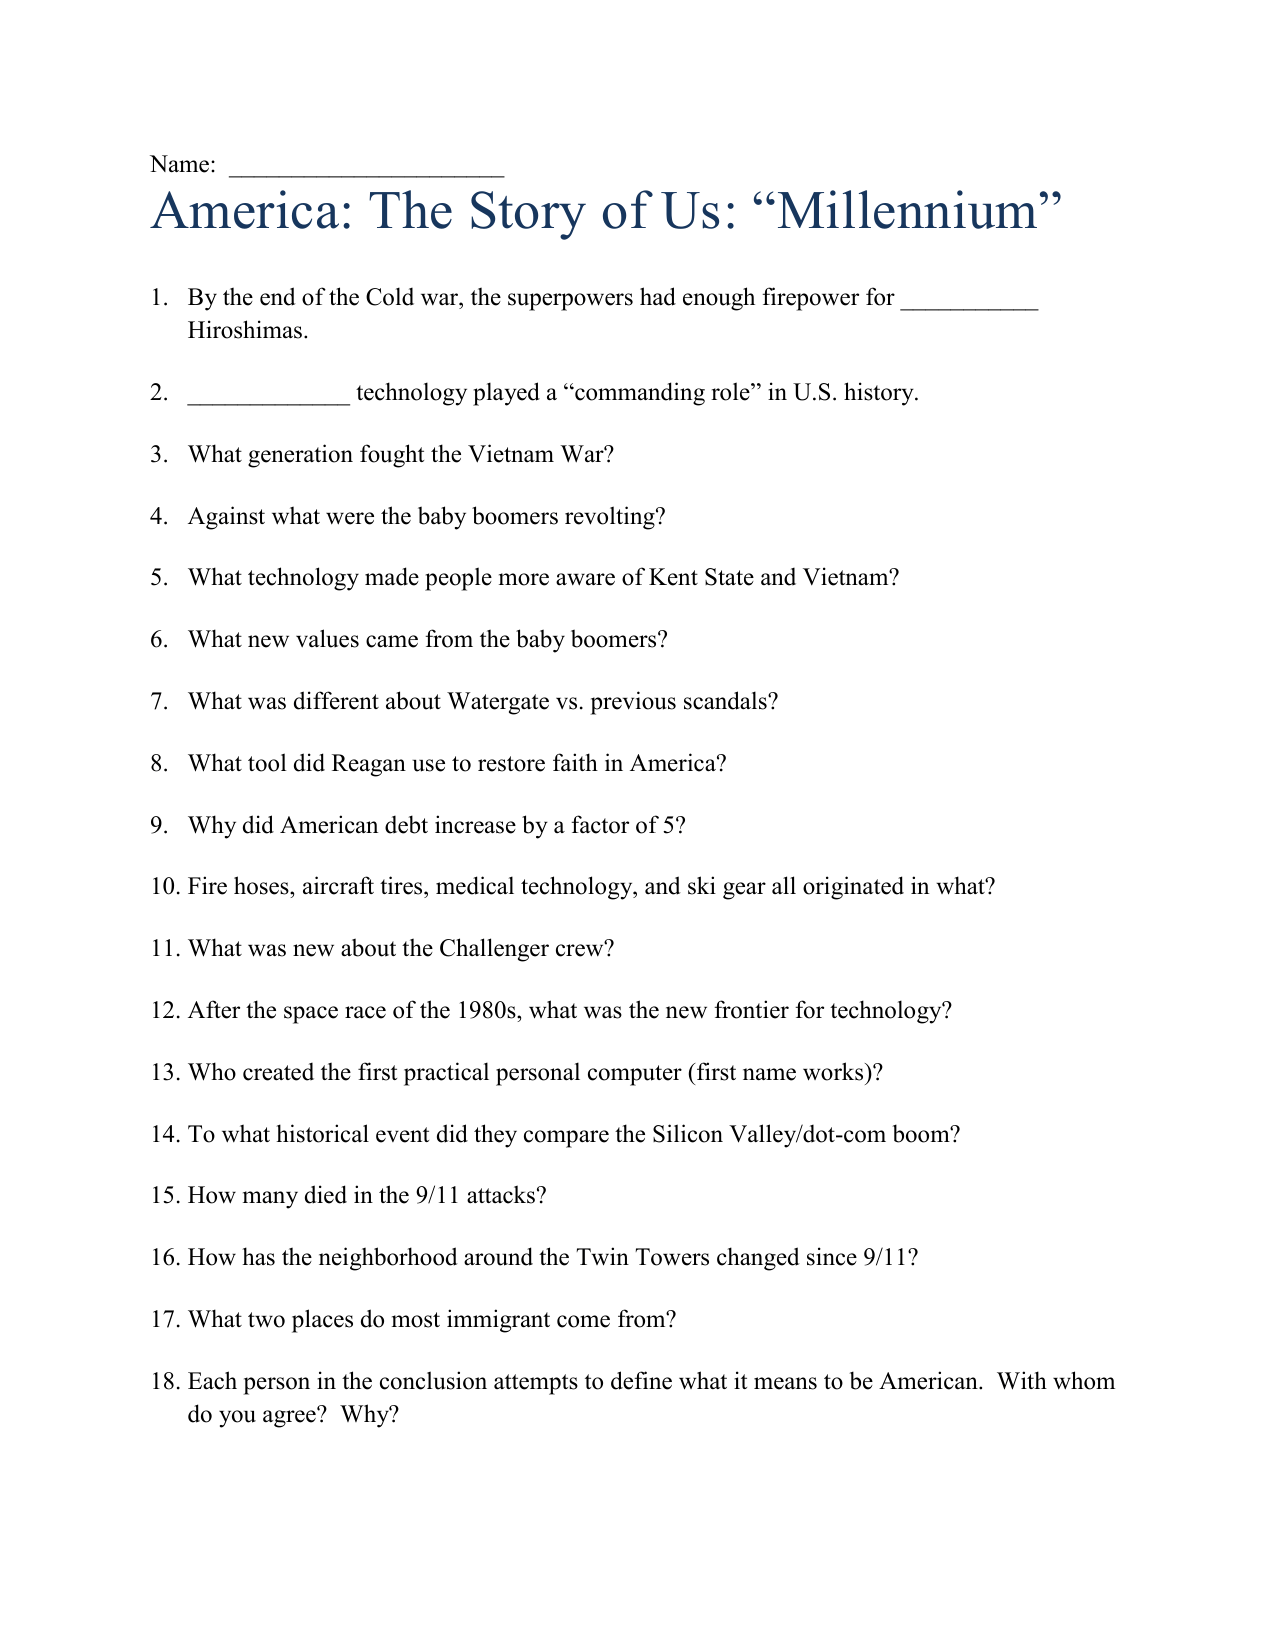 America The Story Of Us Millennium Answer Key